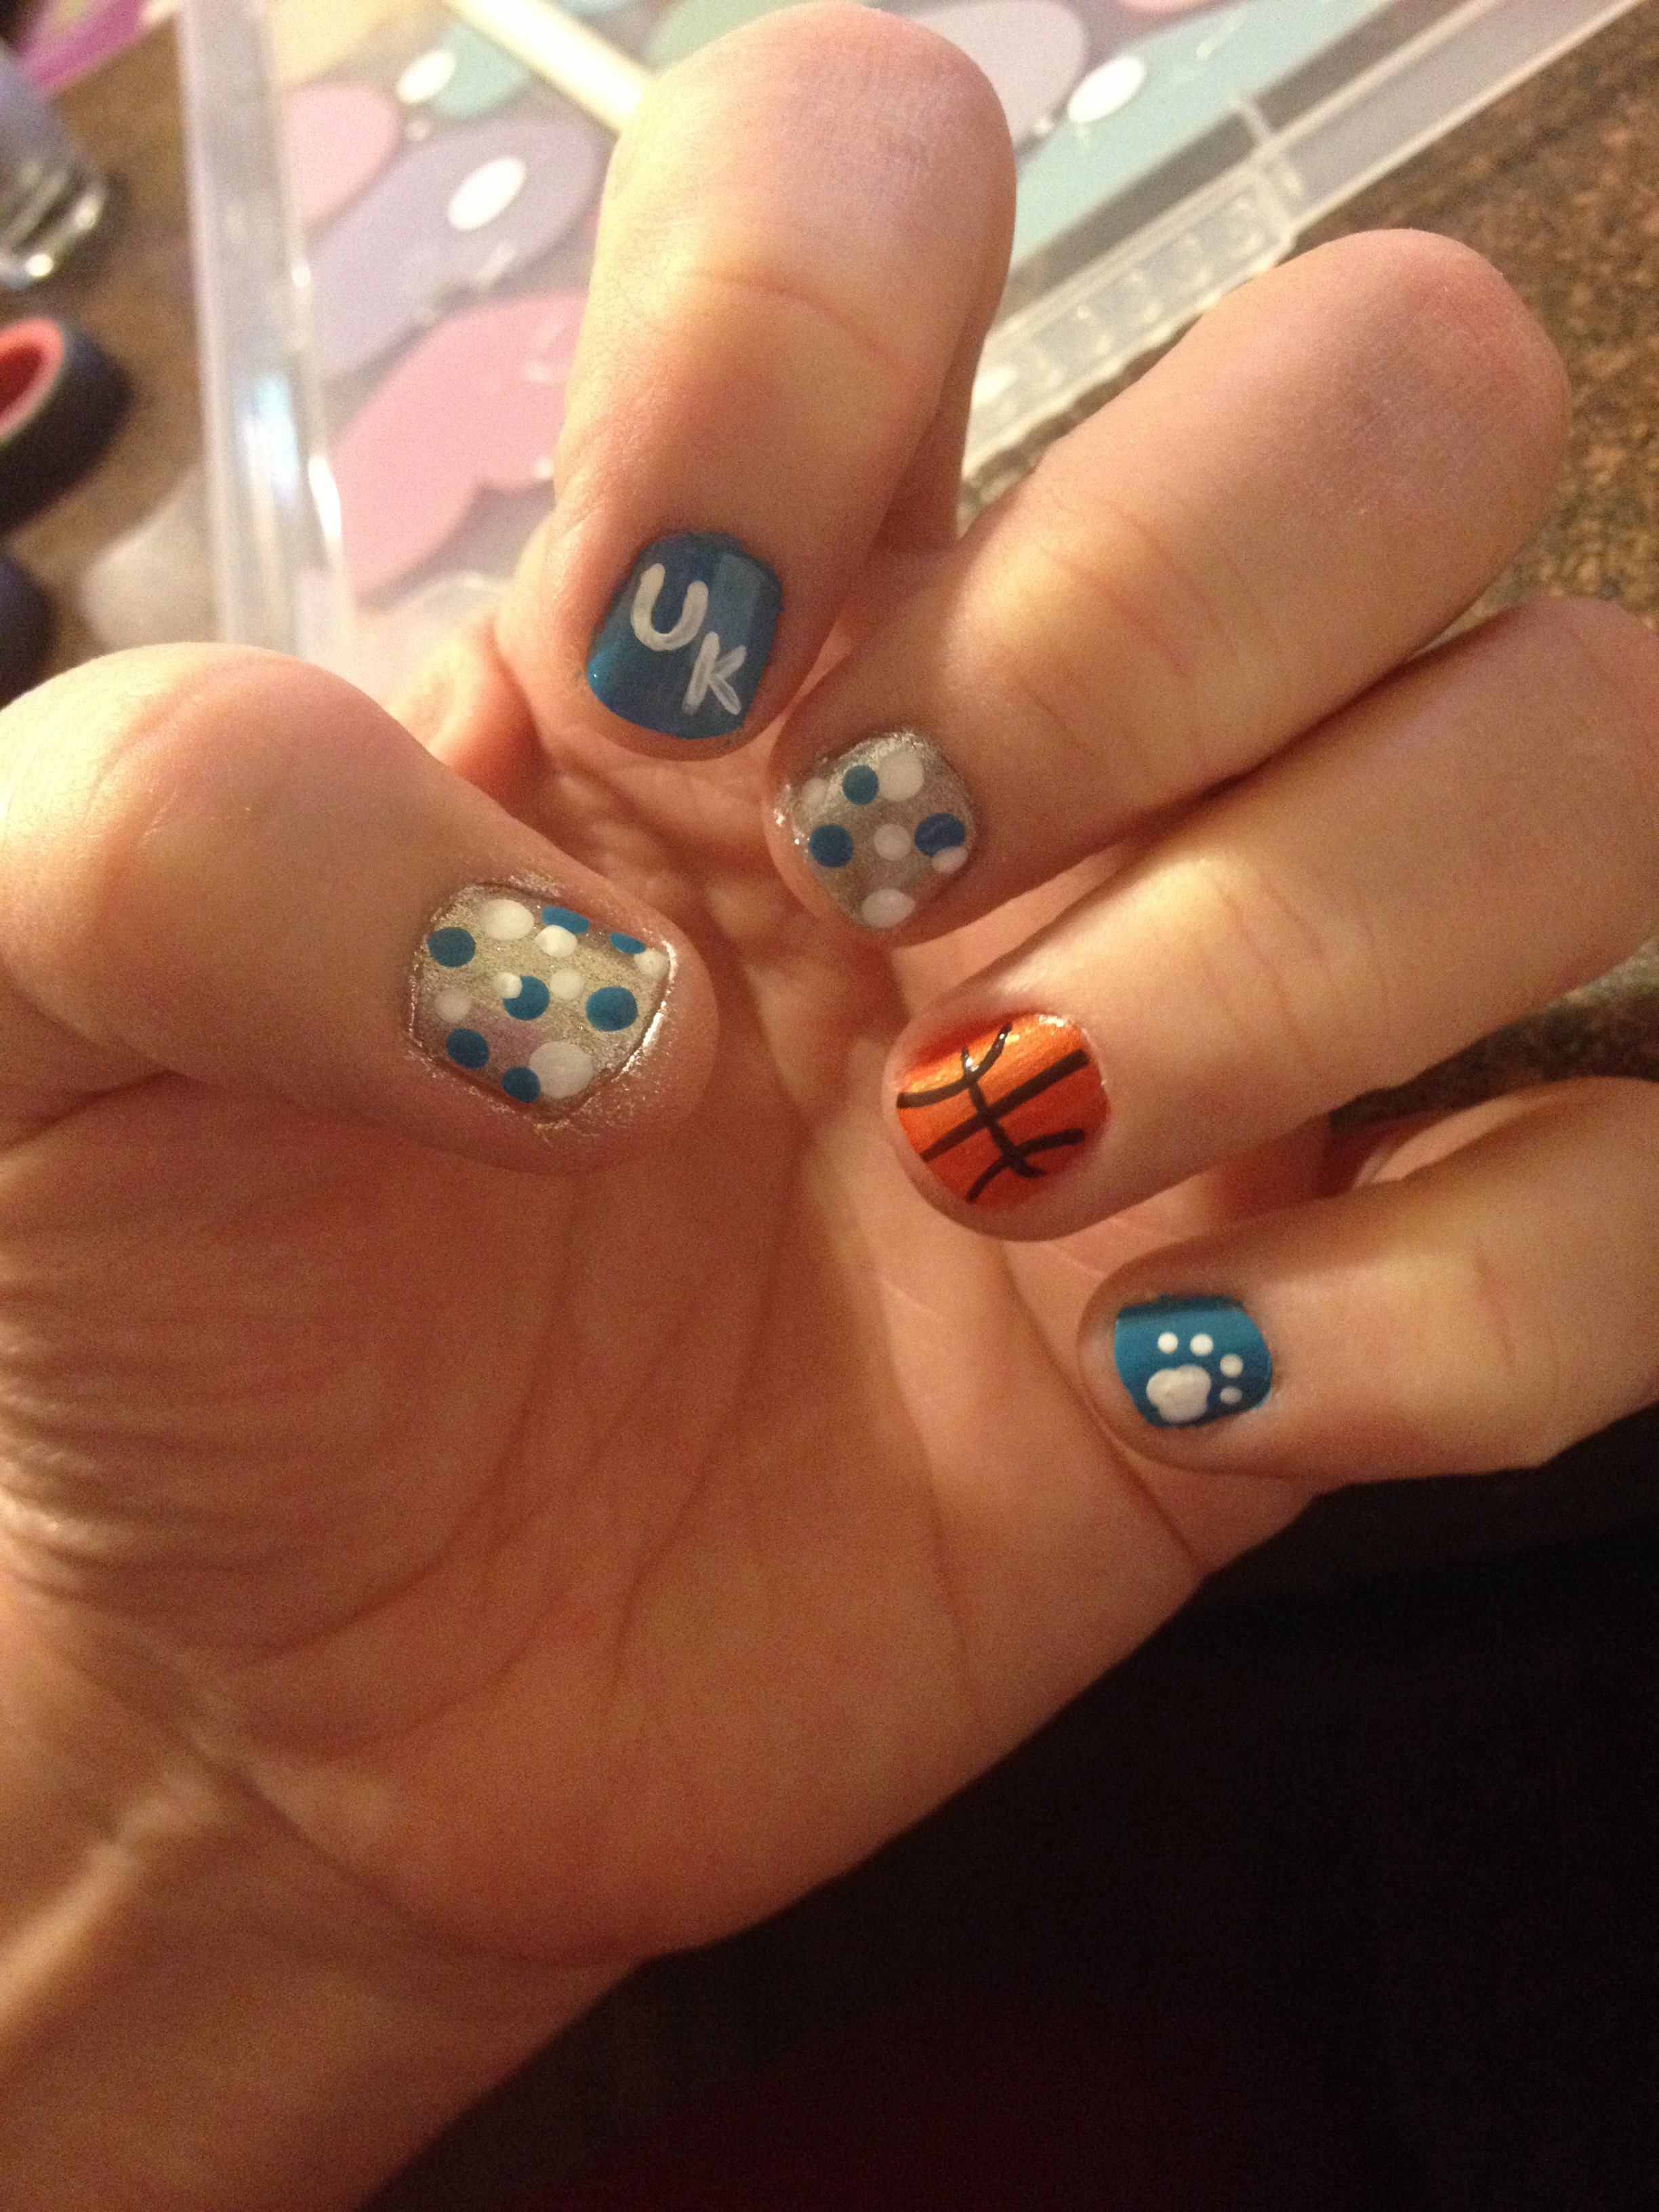 University of Kentucky basketball nail art. | Things I\'ve made ...